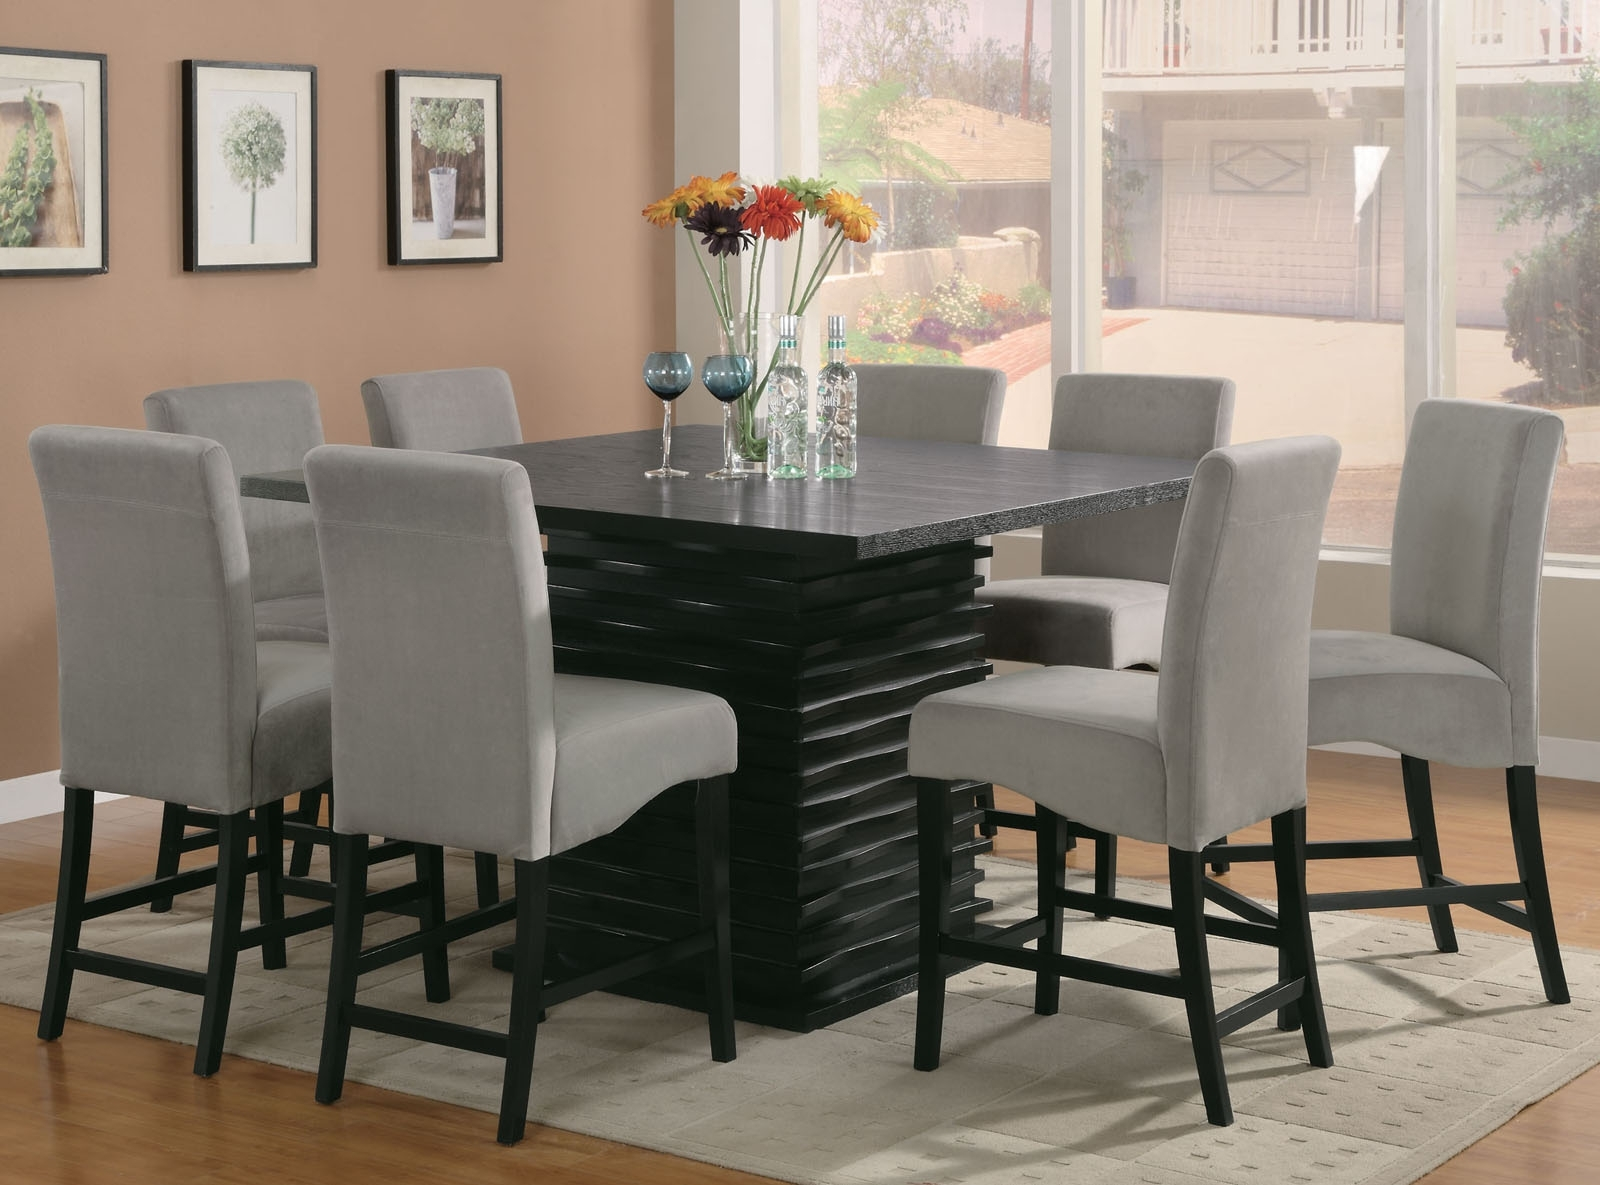 8 Chairs Dining Sets intended for Famous Coaster Stanton 9Pc Counter Height Dining Set In Black With Gray